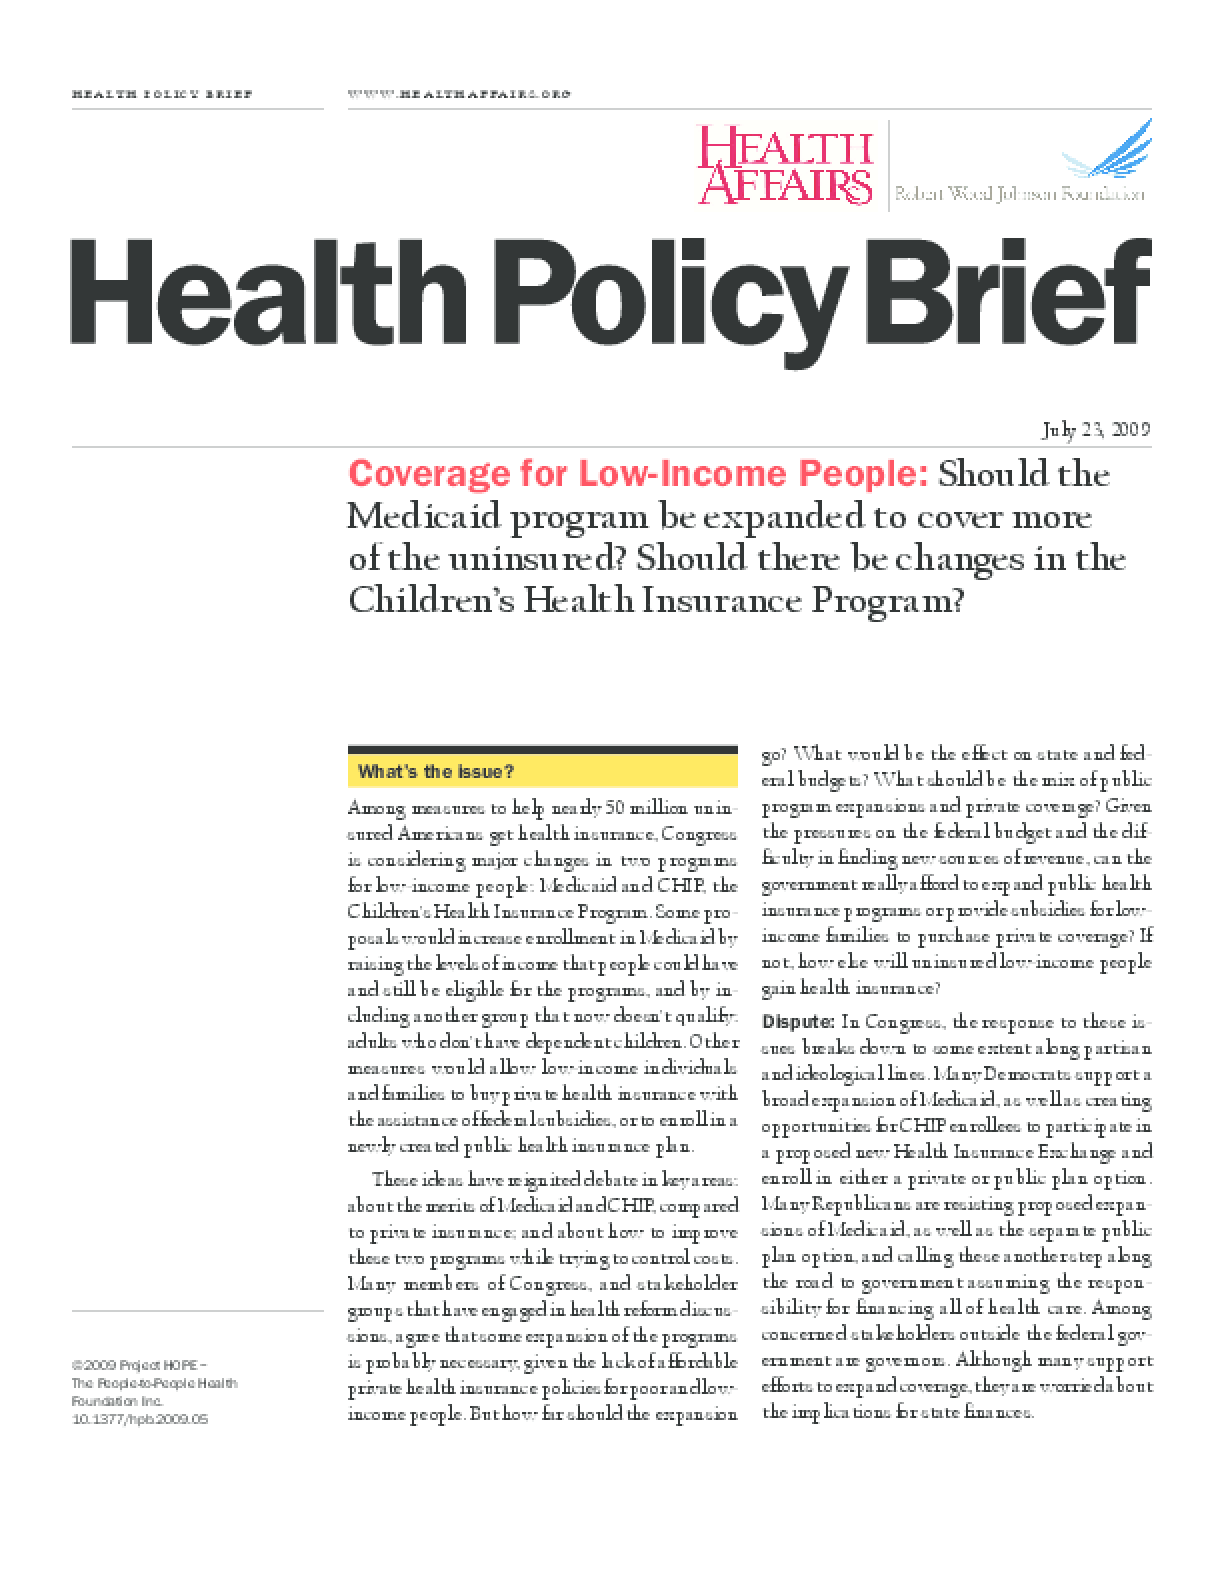 Health Affairs/RWJF Policy Brief: Coverage for Low-Income People